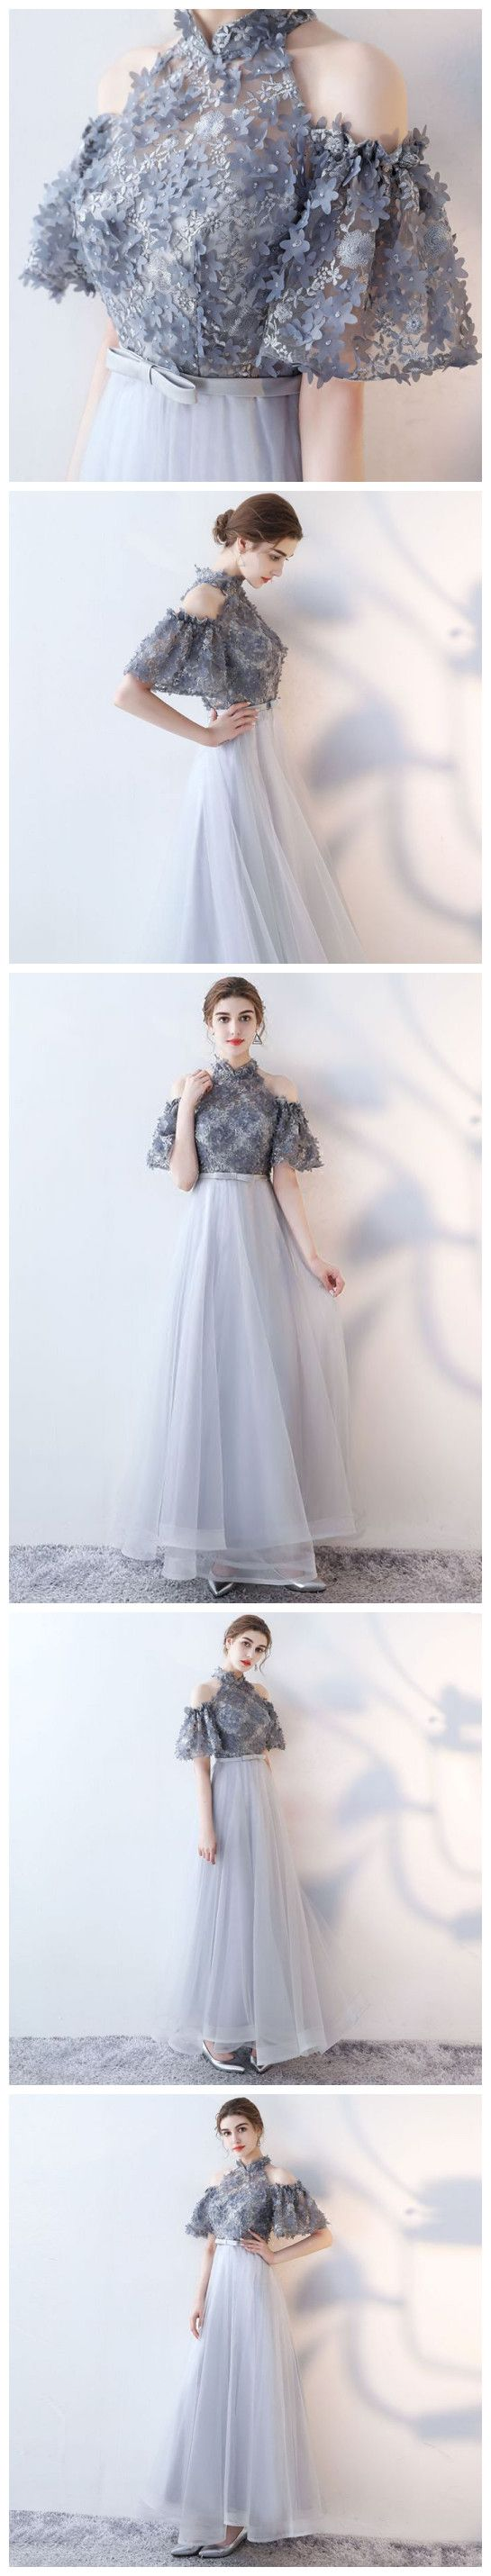 CHIC A-LINE HIGH NECK TULLE APPLIQUE MODEST LONG PROM DRESS EVENING DRESS AM749 #amyprom #fashion #party #evening #chic #promdress #promdresslong #longpromdress #eveningdress #silver